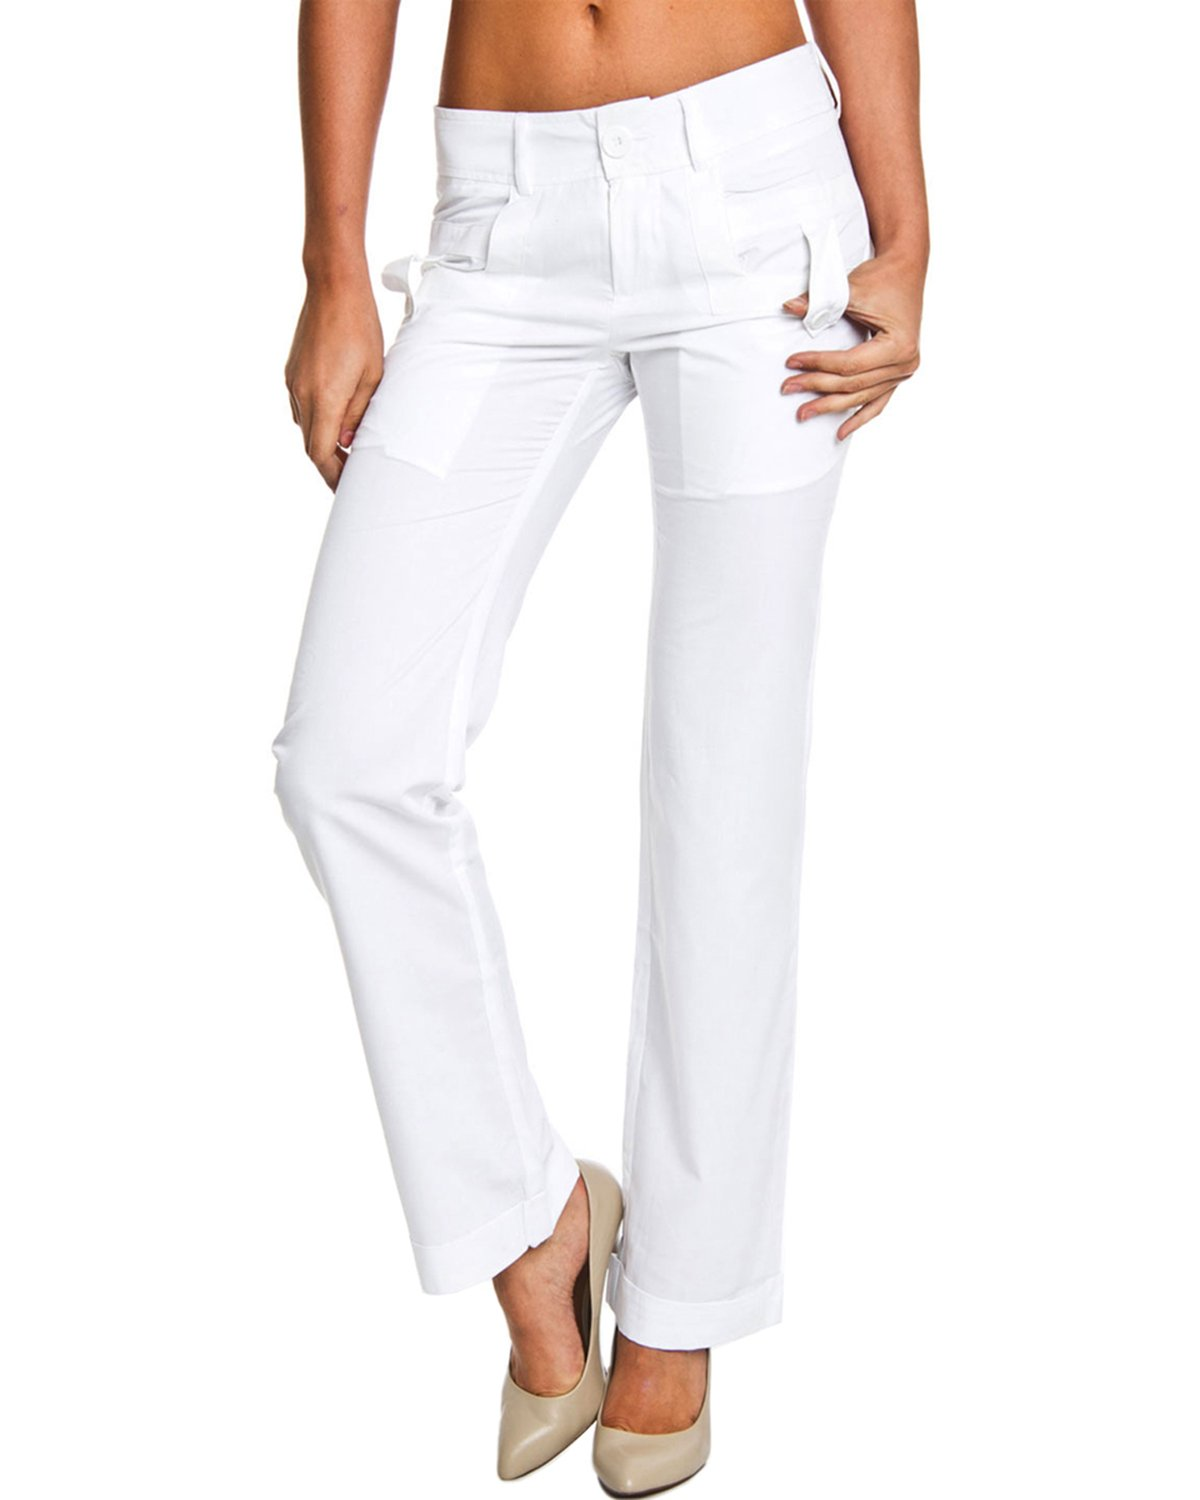 Style NY Women's Button Tab Skinny Fashion Pants - White - 6